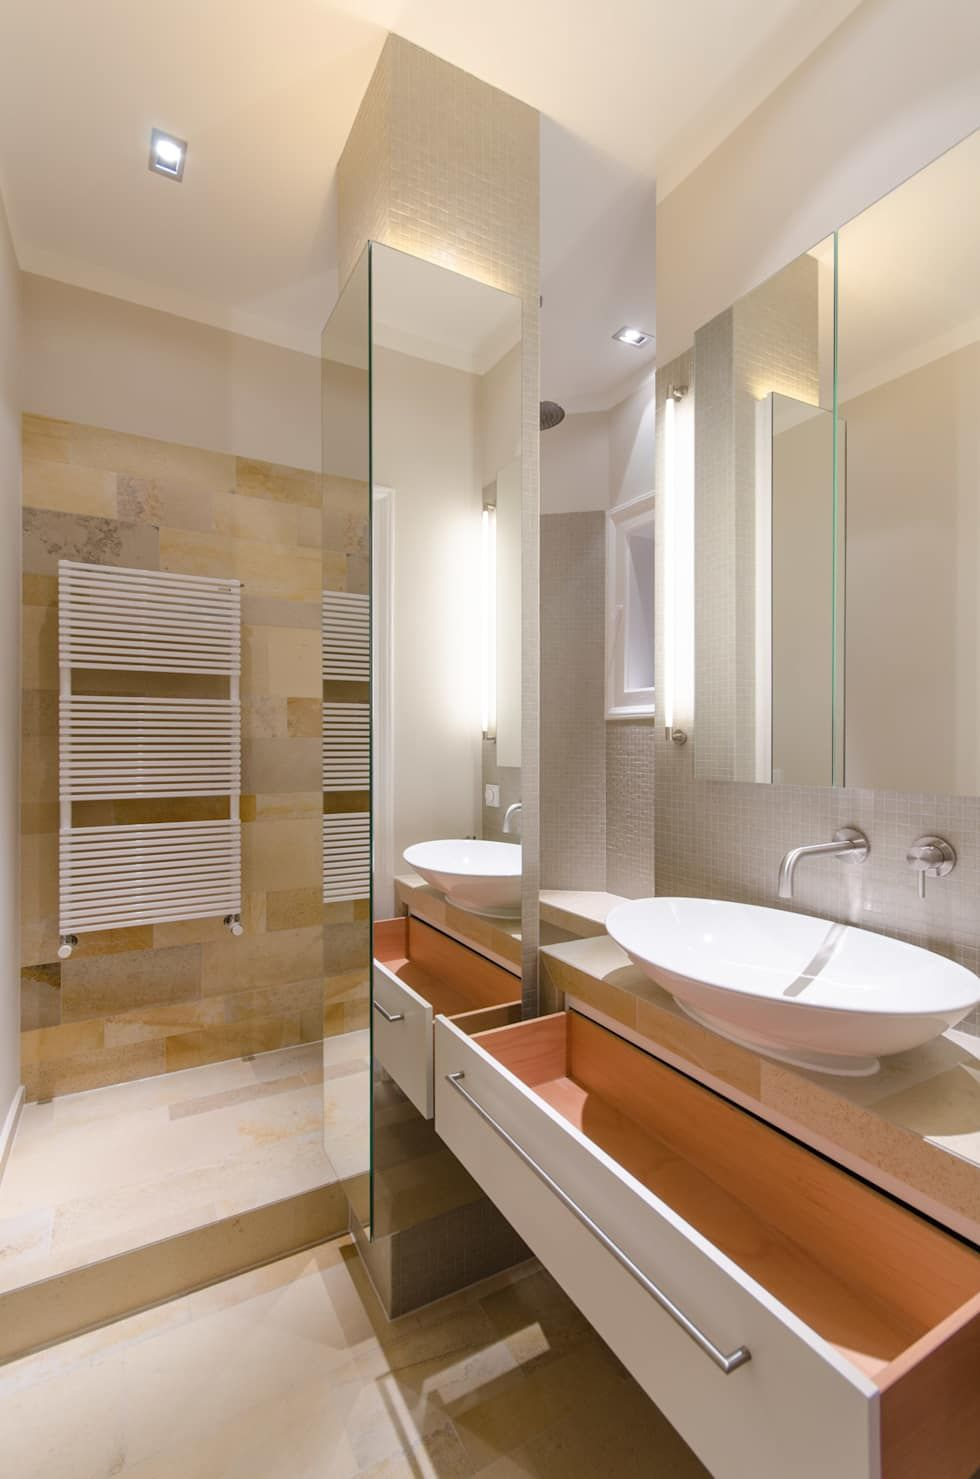 Modern Bathroom Ideas Photo Gallery Modernbathroom Contemporary Vanities Images Do You Think He Or